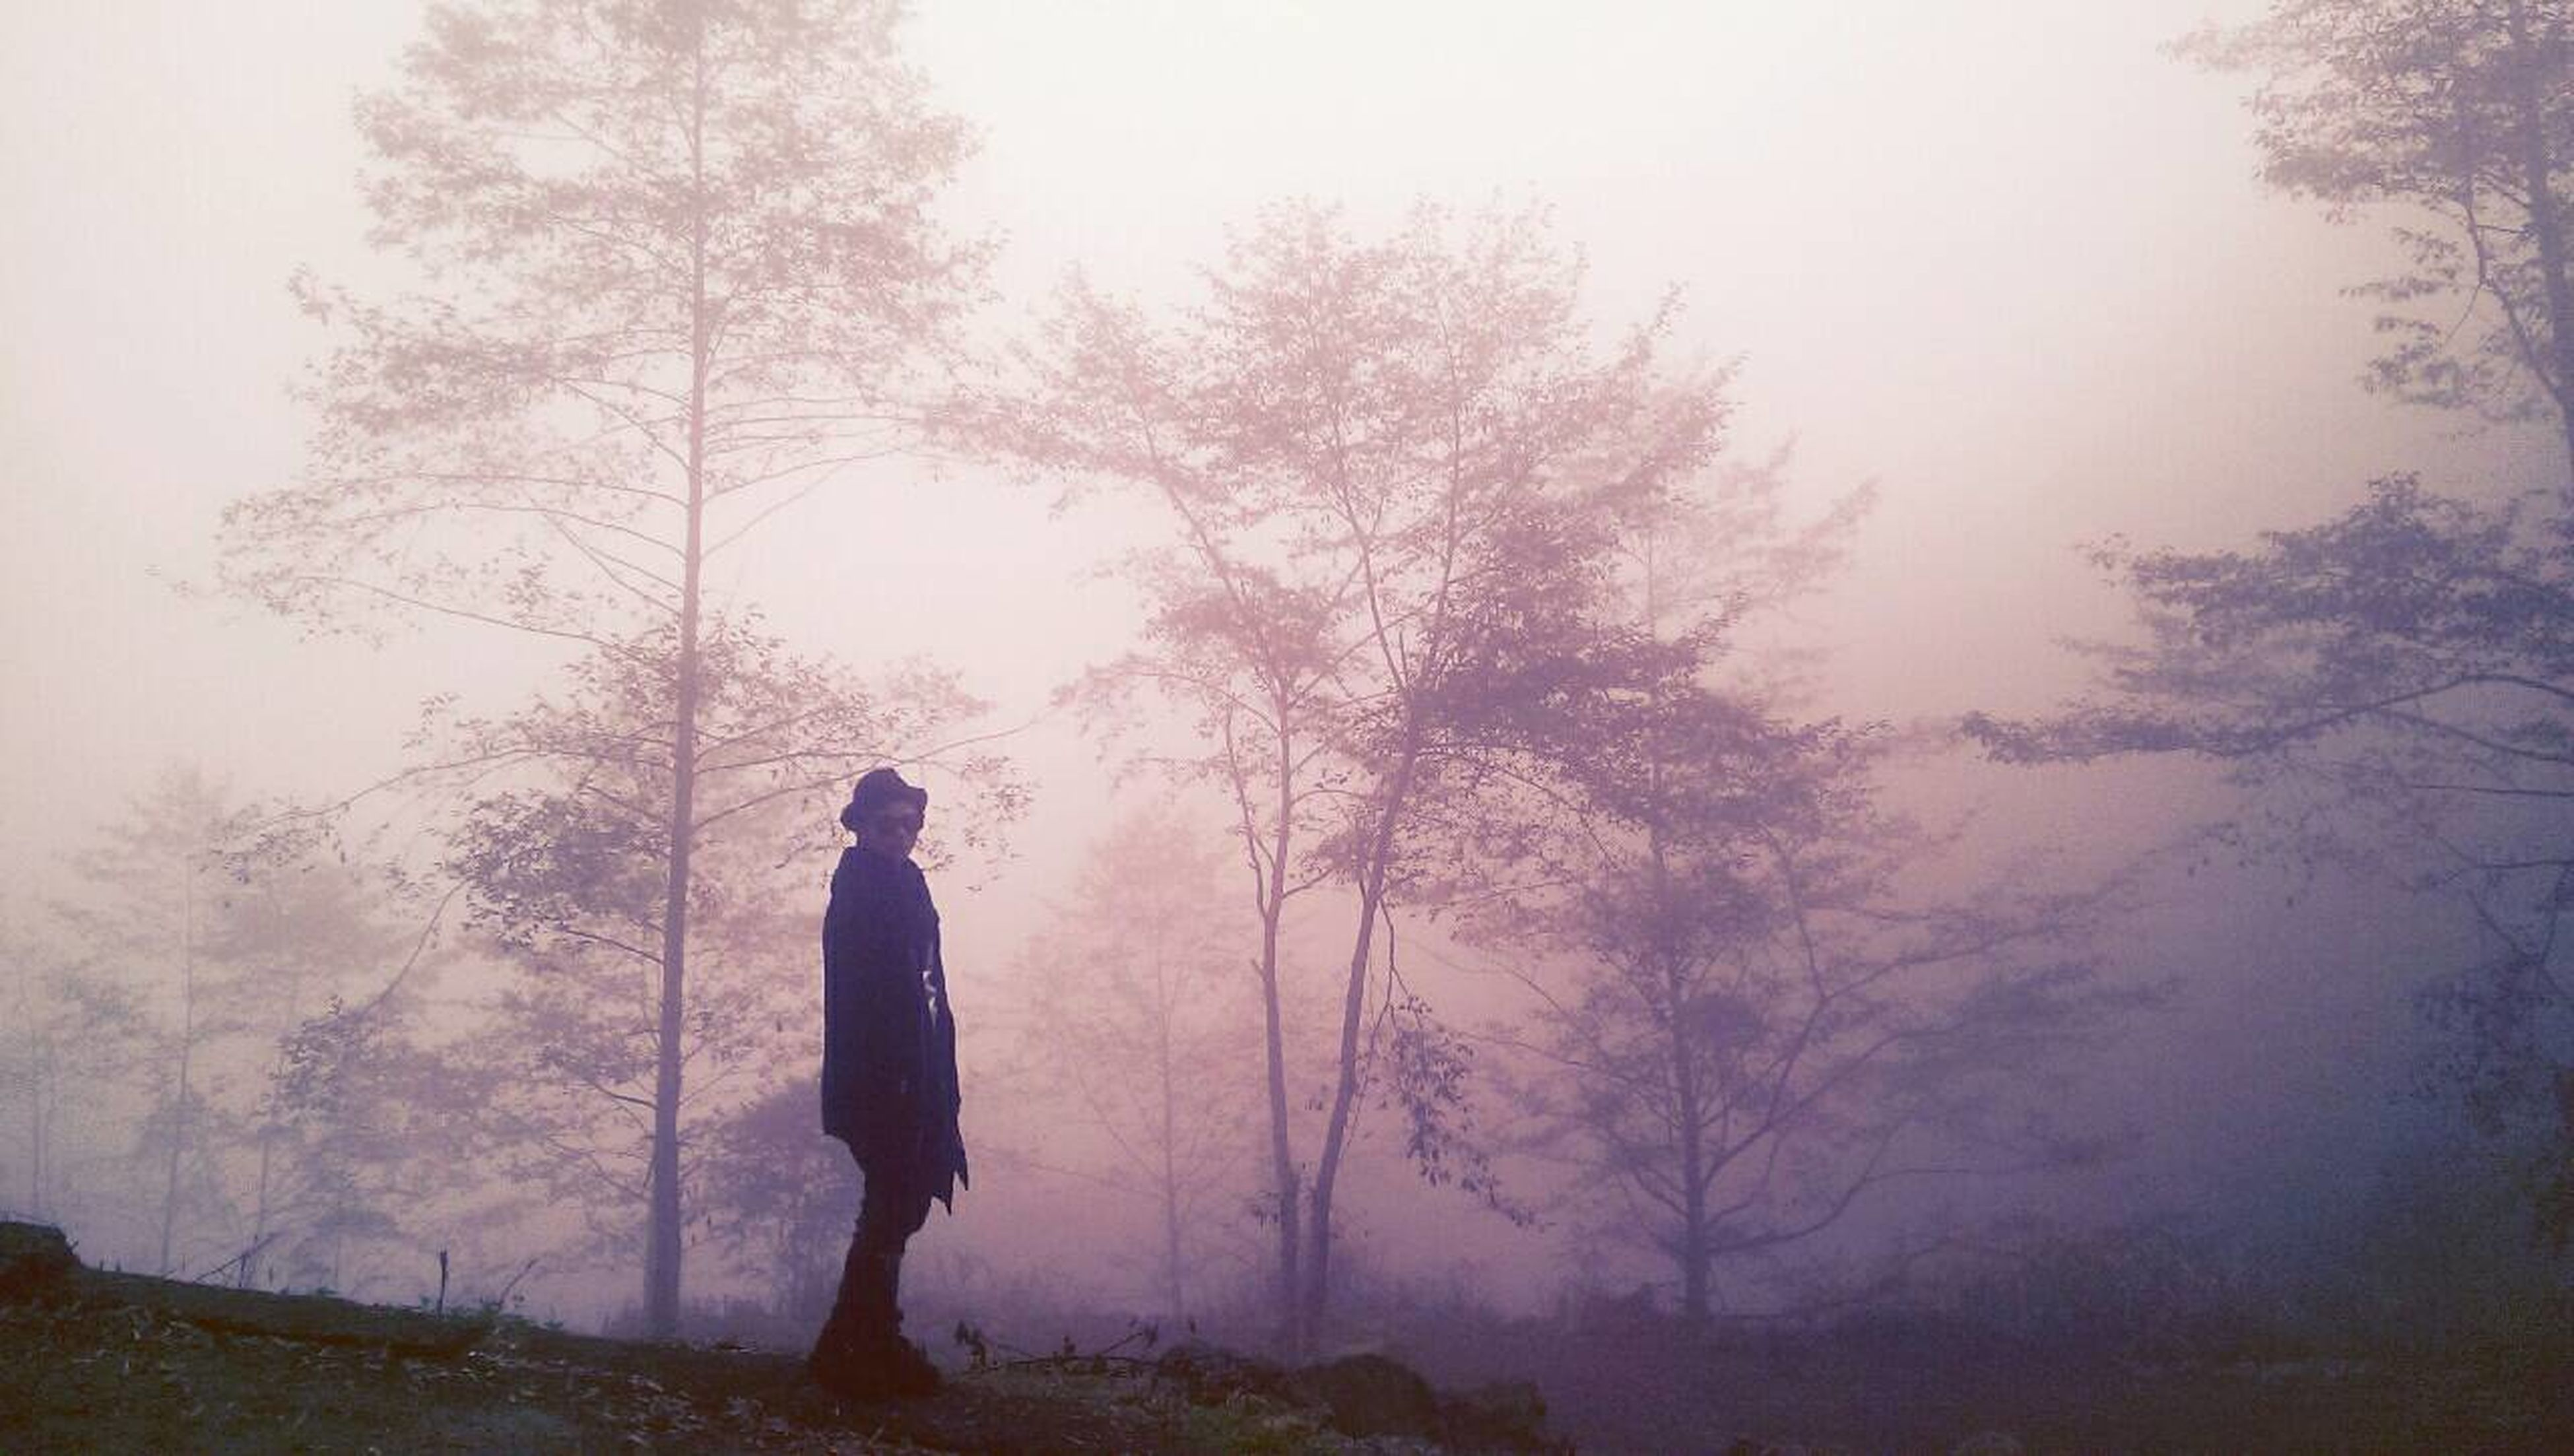 tree, lifestyles, full length, bare tree, silhouette, standing, leisure activity, rear view, men, tranquility, tranquil scene, fog, nature, beauty in nature, landscape, sky, scenics